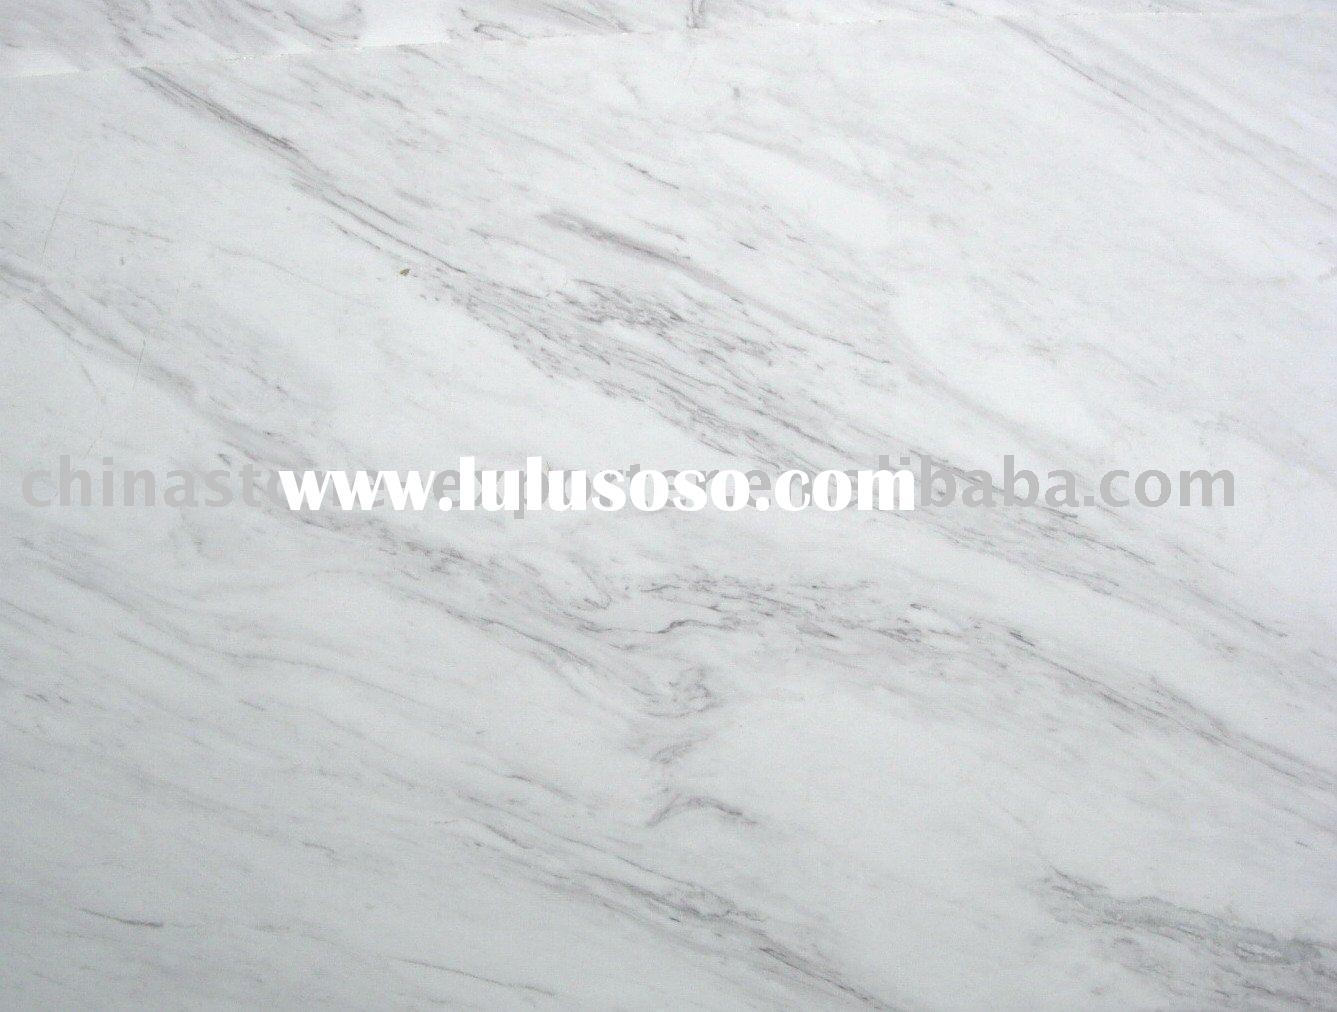 Ariston (Marble, Marble Tile, Marble slab, White Marble, Sink, Countertop, Chinese Marble, floor til